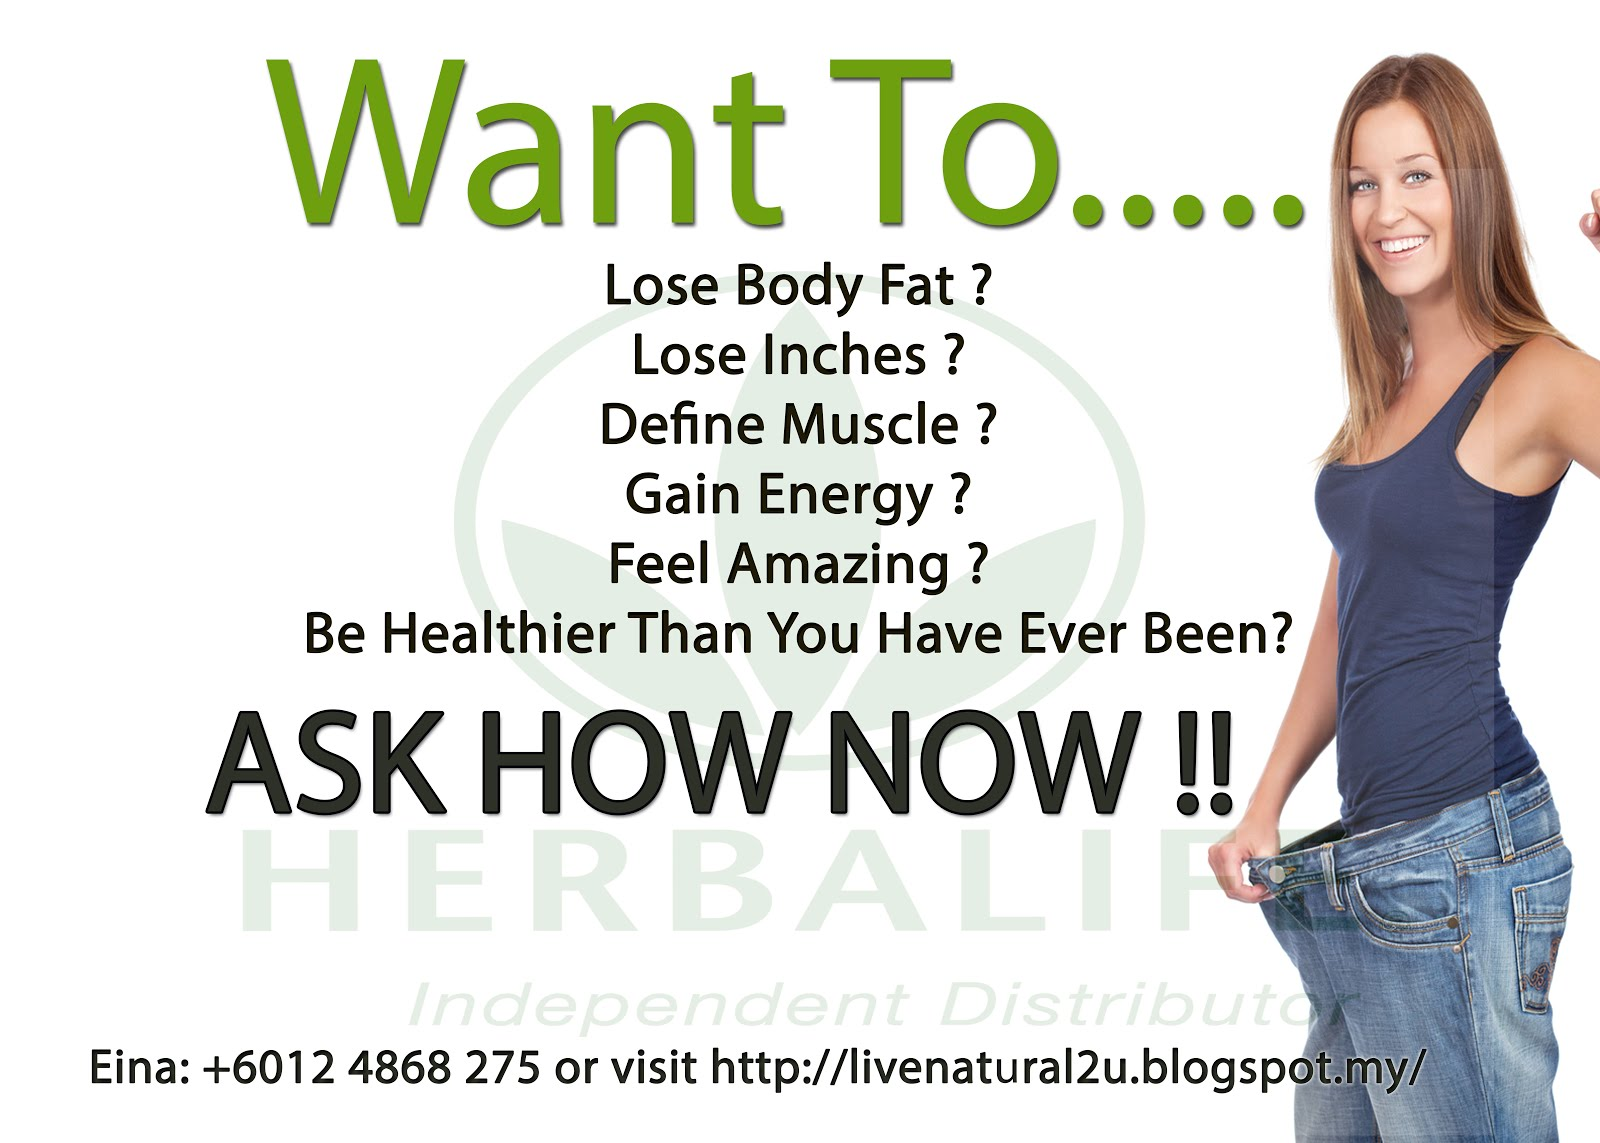 weight loss challenge flyer template - herbalife distributor penang